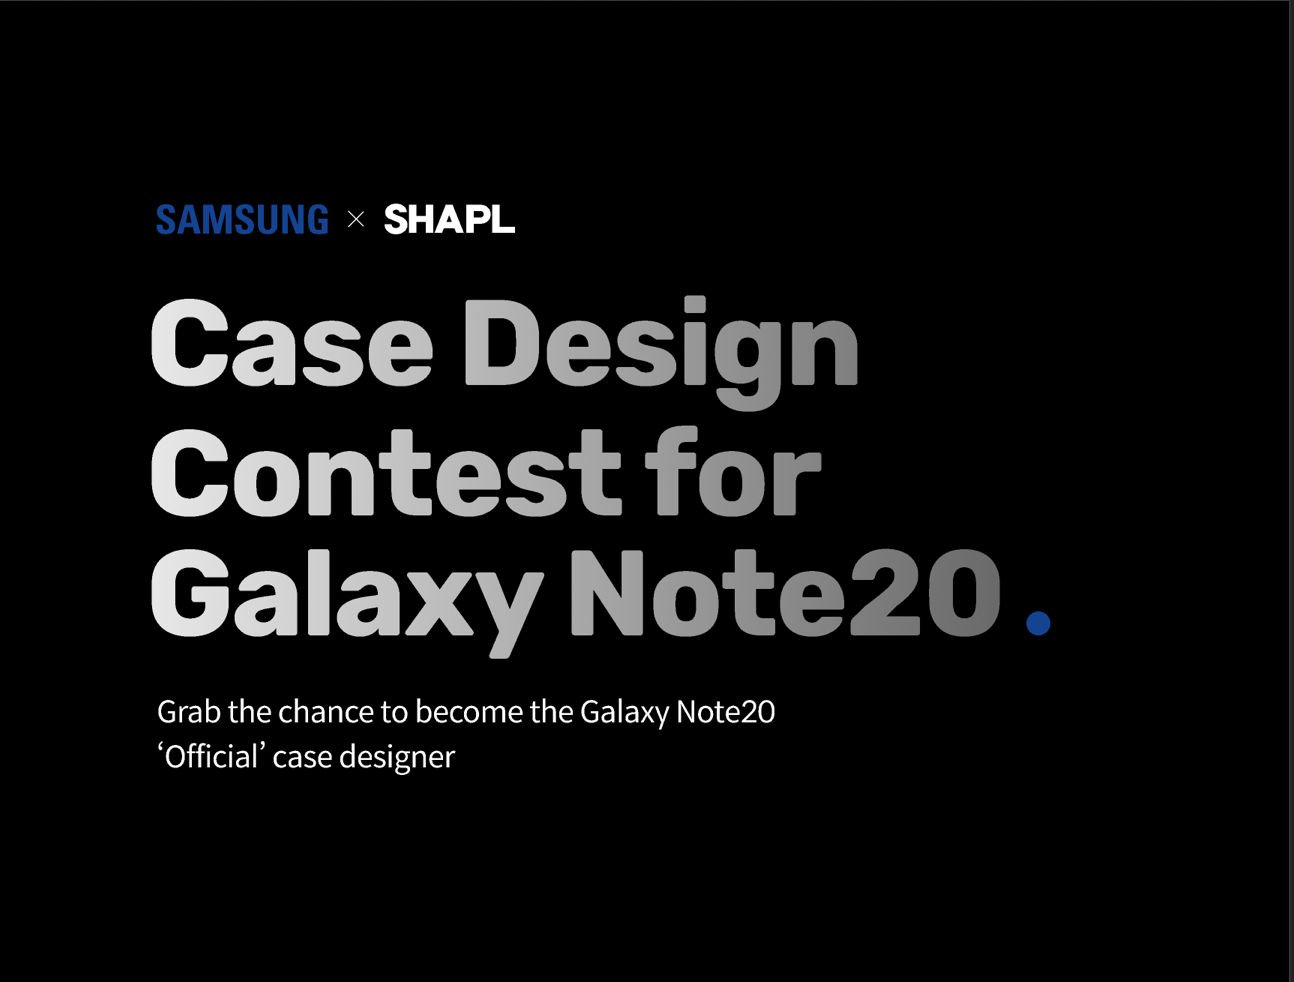 [SHAPL X SAMSUNG] Galaxy Note20 Case design Contest